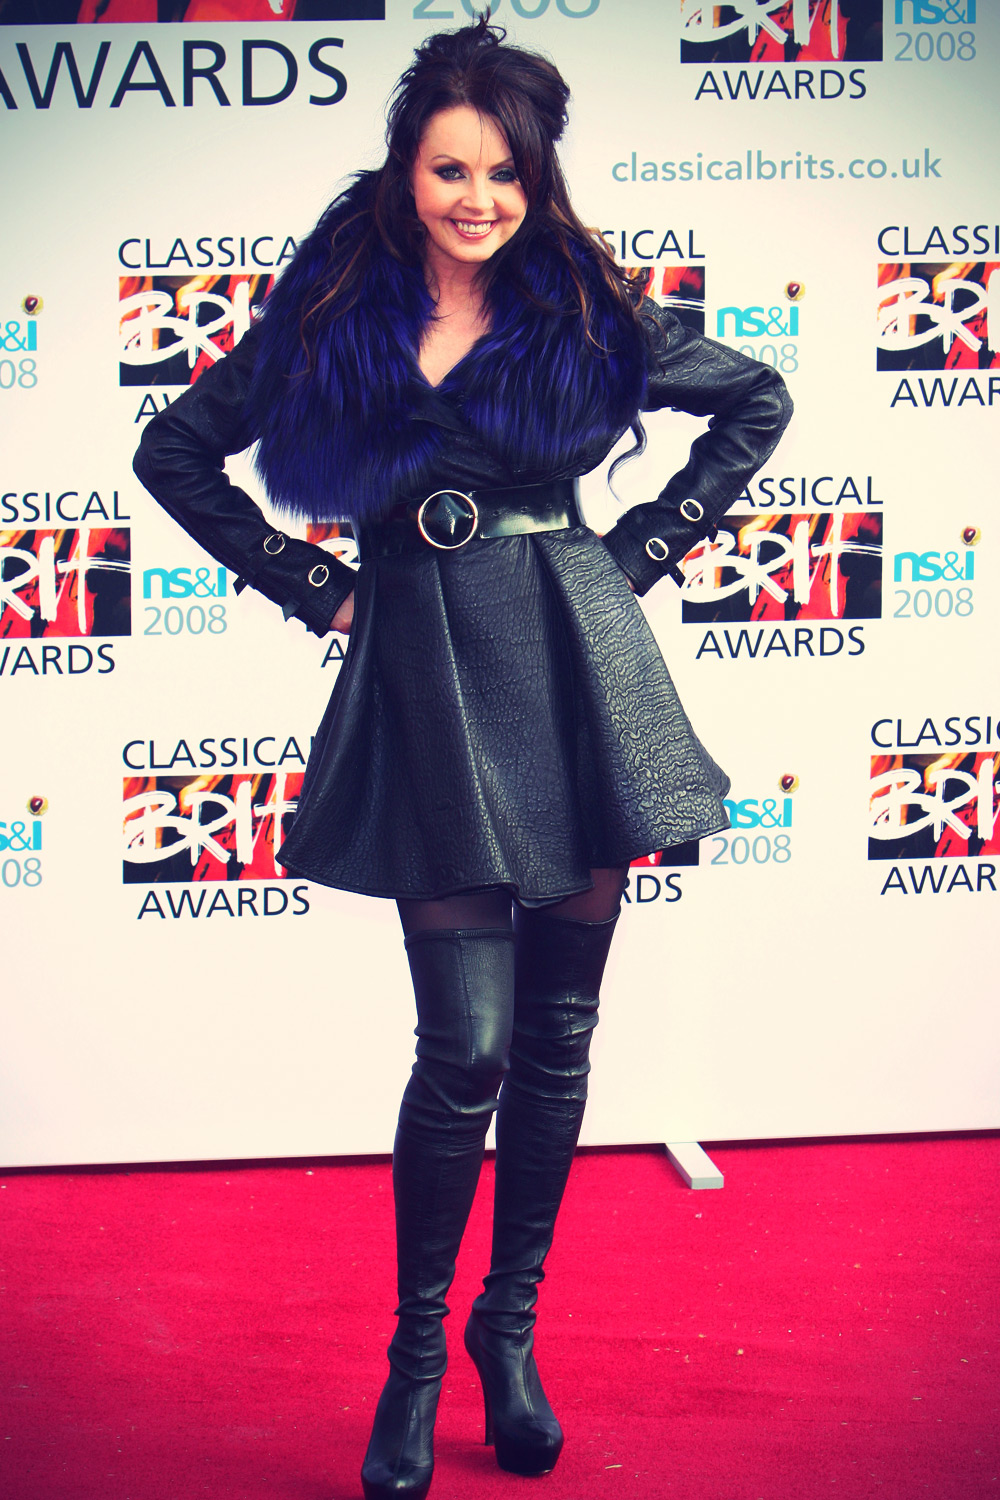 Sarah Brightman at Classical Brit Awards 2008 London